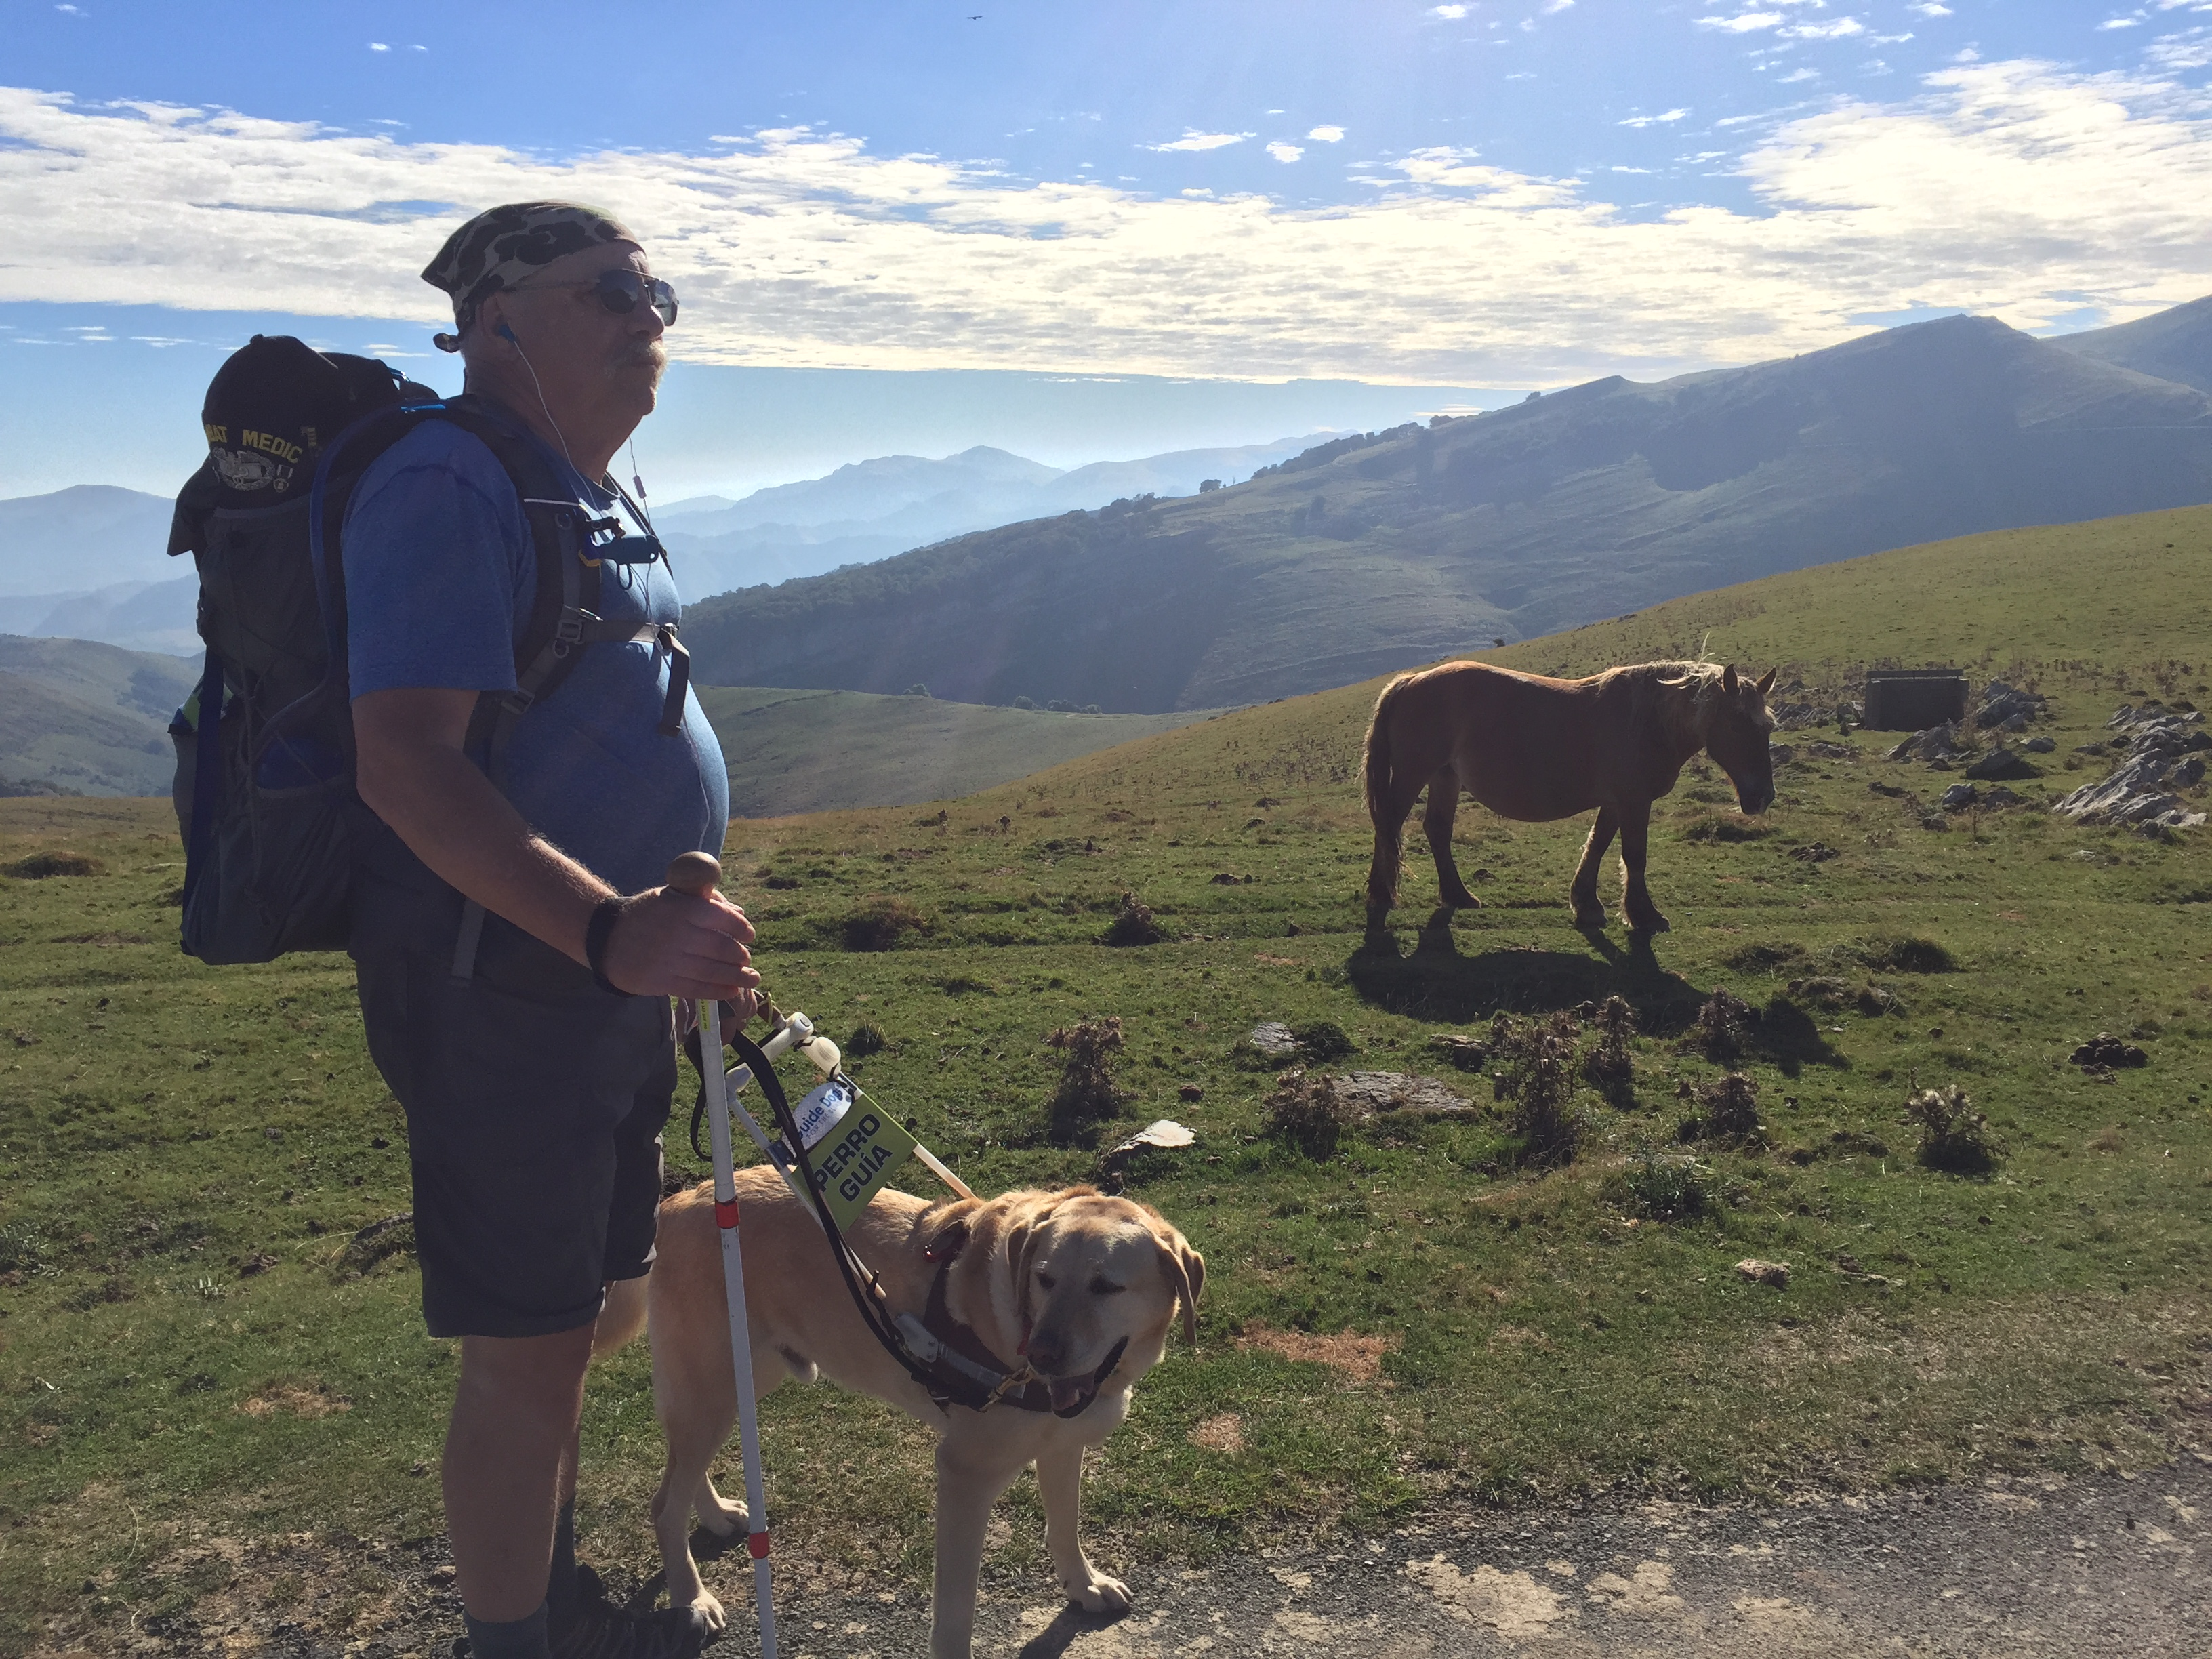 Phil (wearing a backpack and walking pole) stops on the trail with guide dog Jeff (yellow Lab) with a brown horse and mountains in the background.